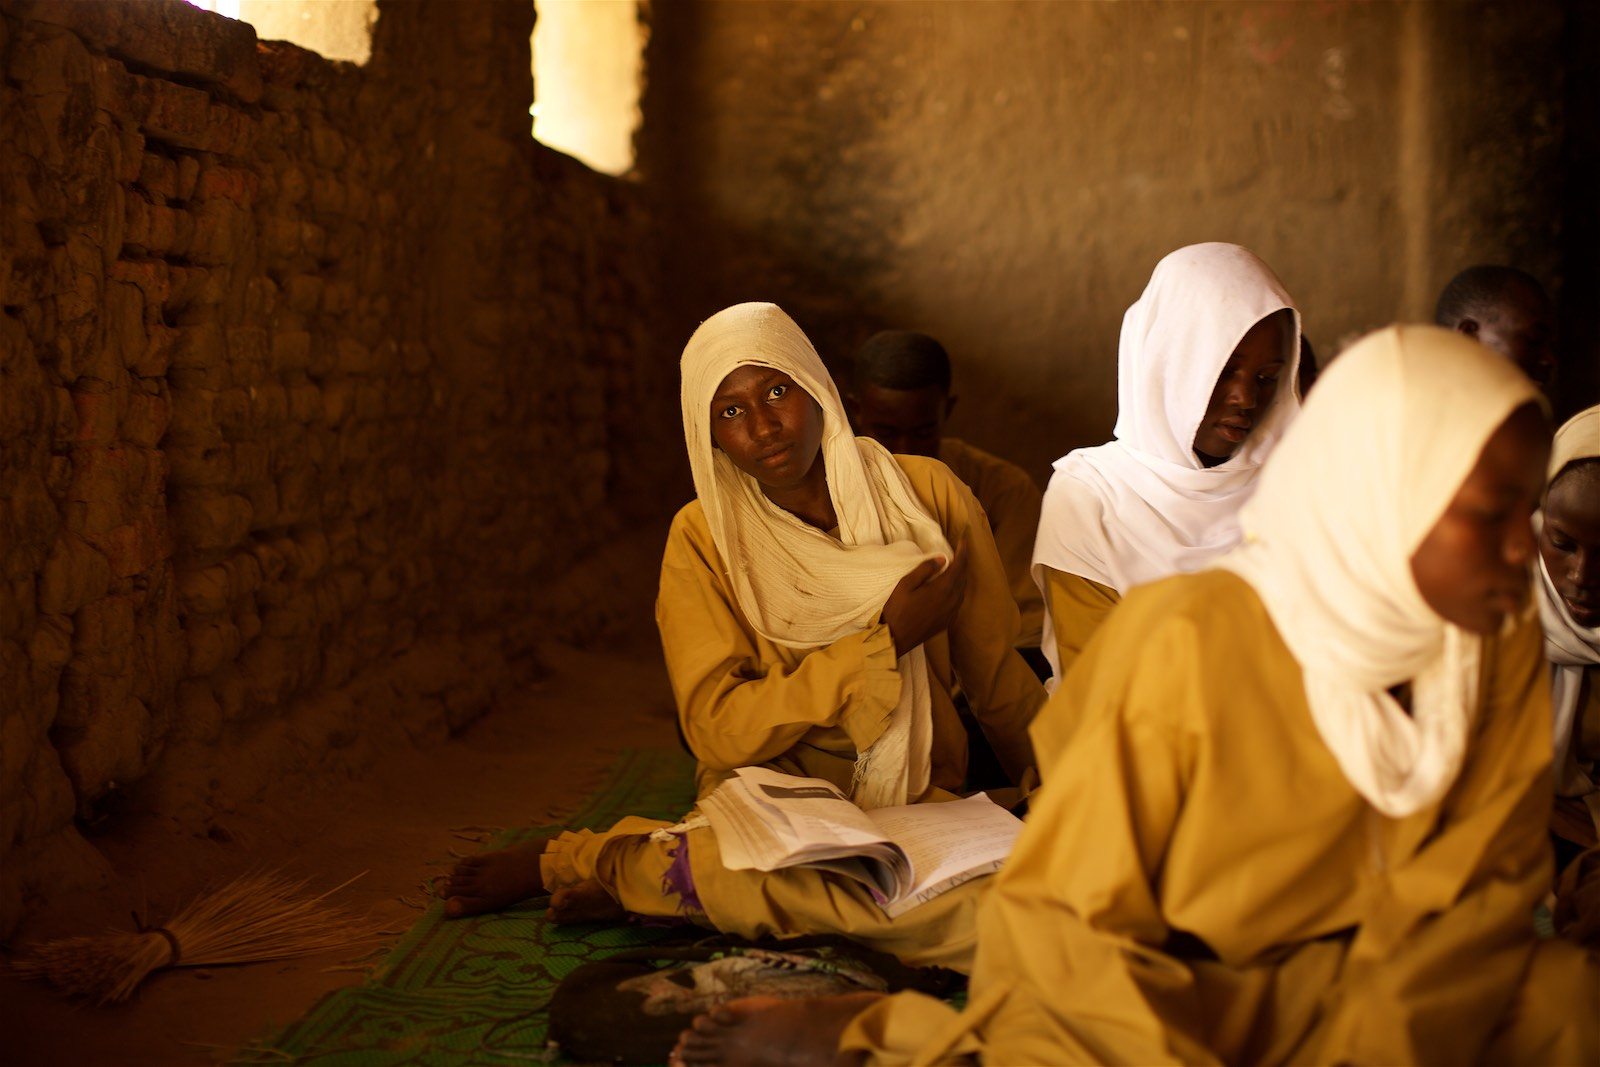 denis-bosnic-chad-school-jrs-jesuit-refugee-service-students-education-mercy-in-motion-6.jpg